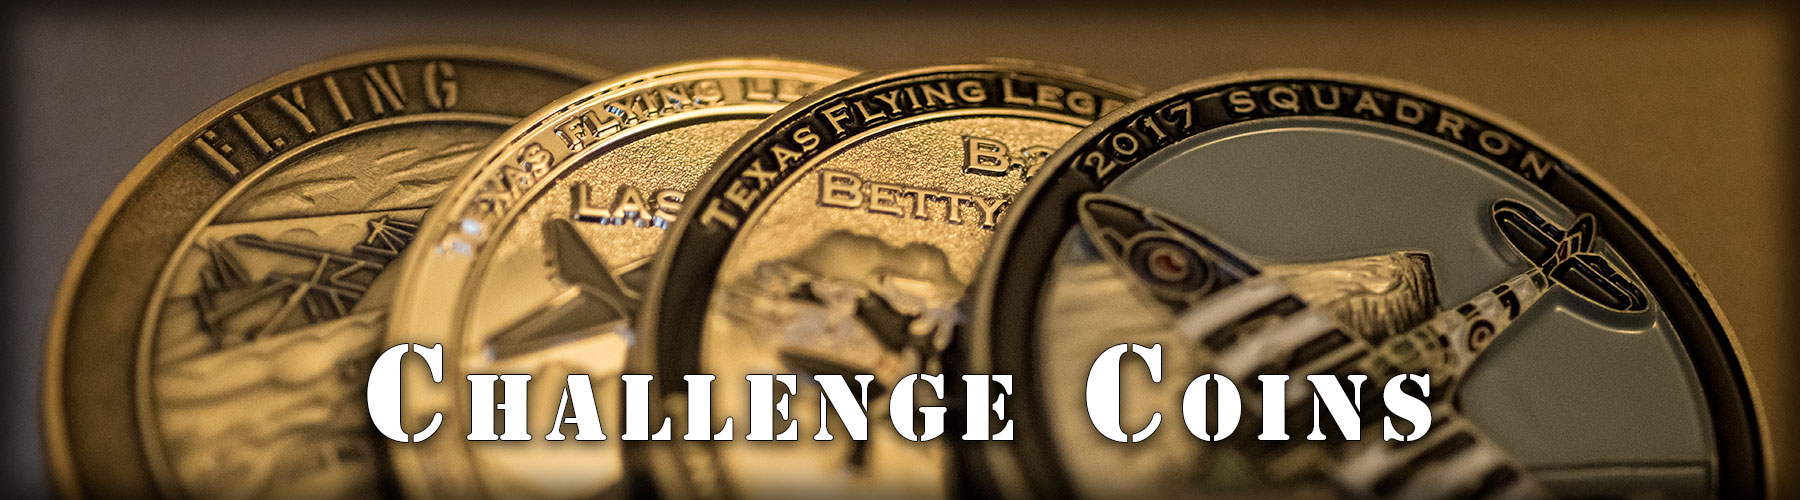 Challenge Coins | Brent Peterson Digital Ink